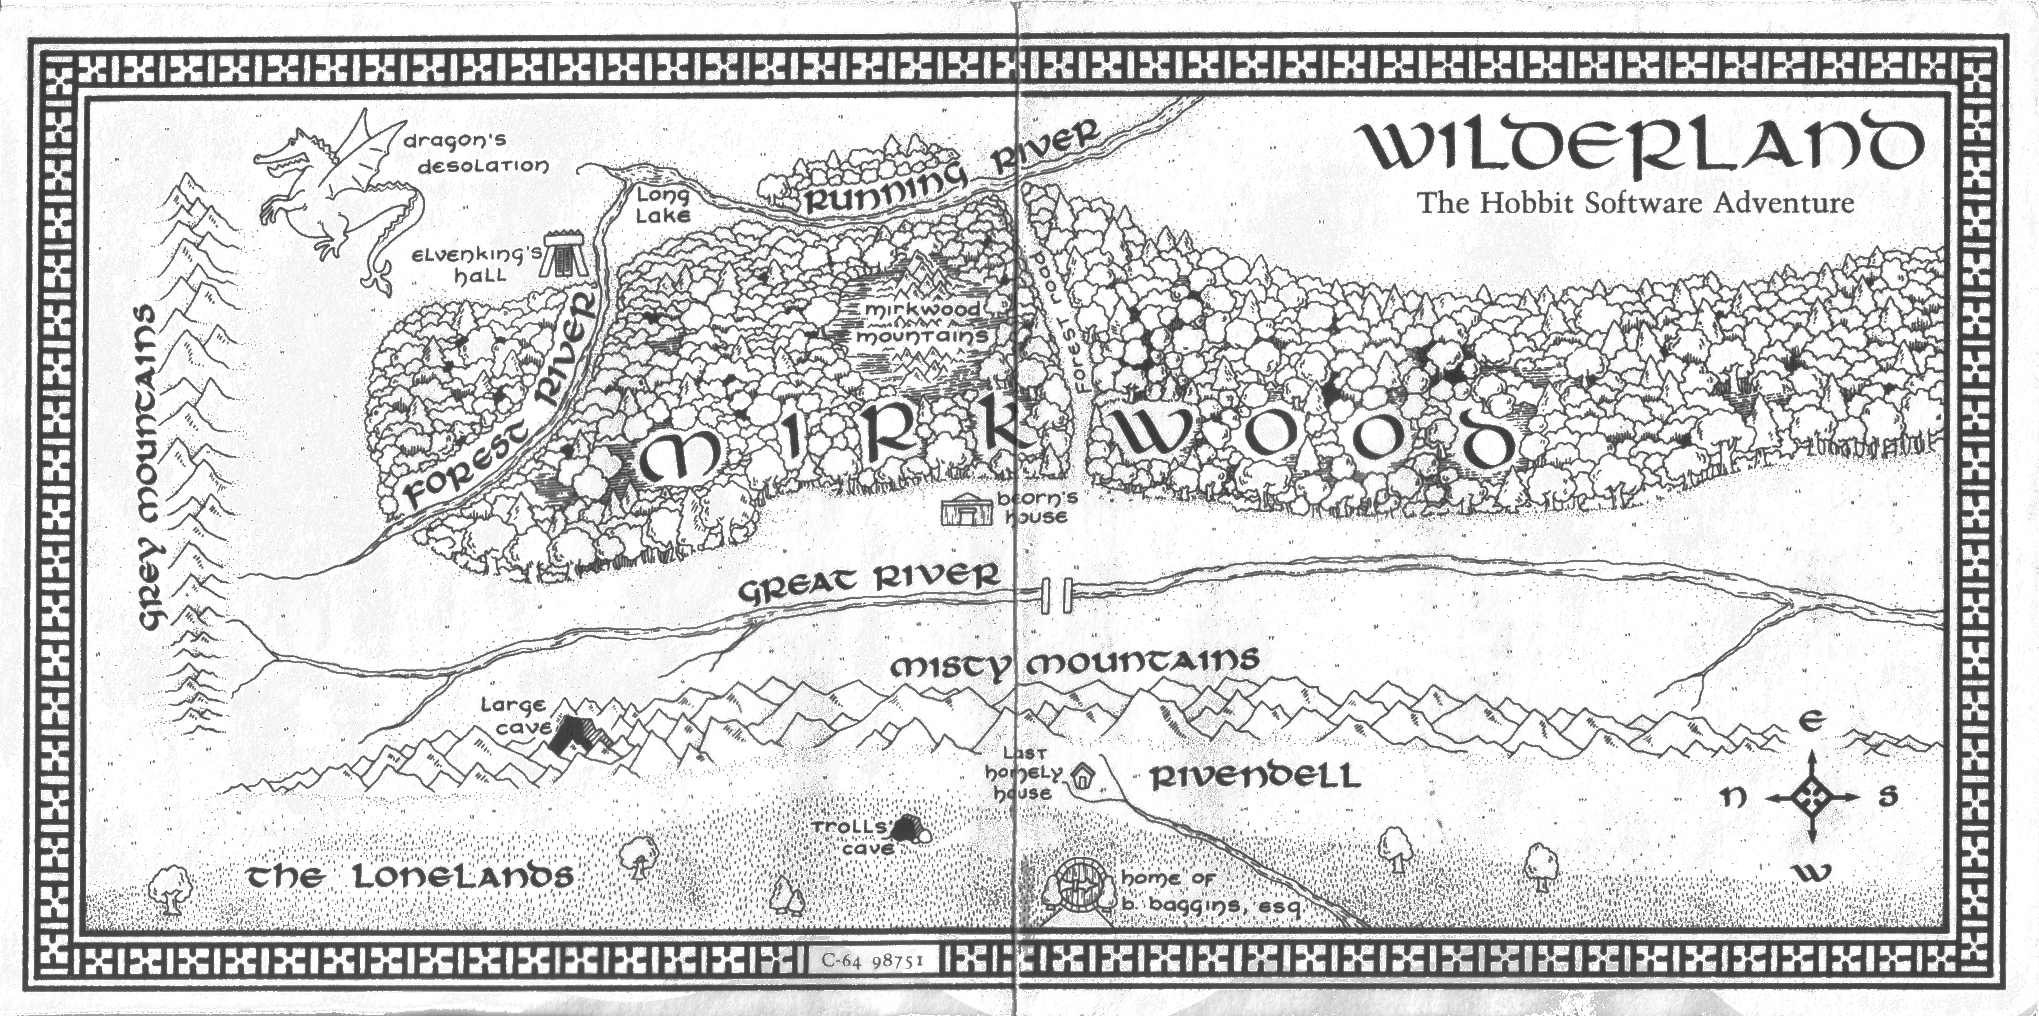 Hobbit Map II Wilderland west to east  Maps of Middleearth